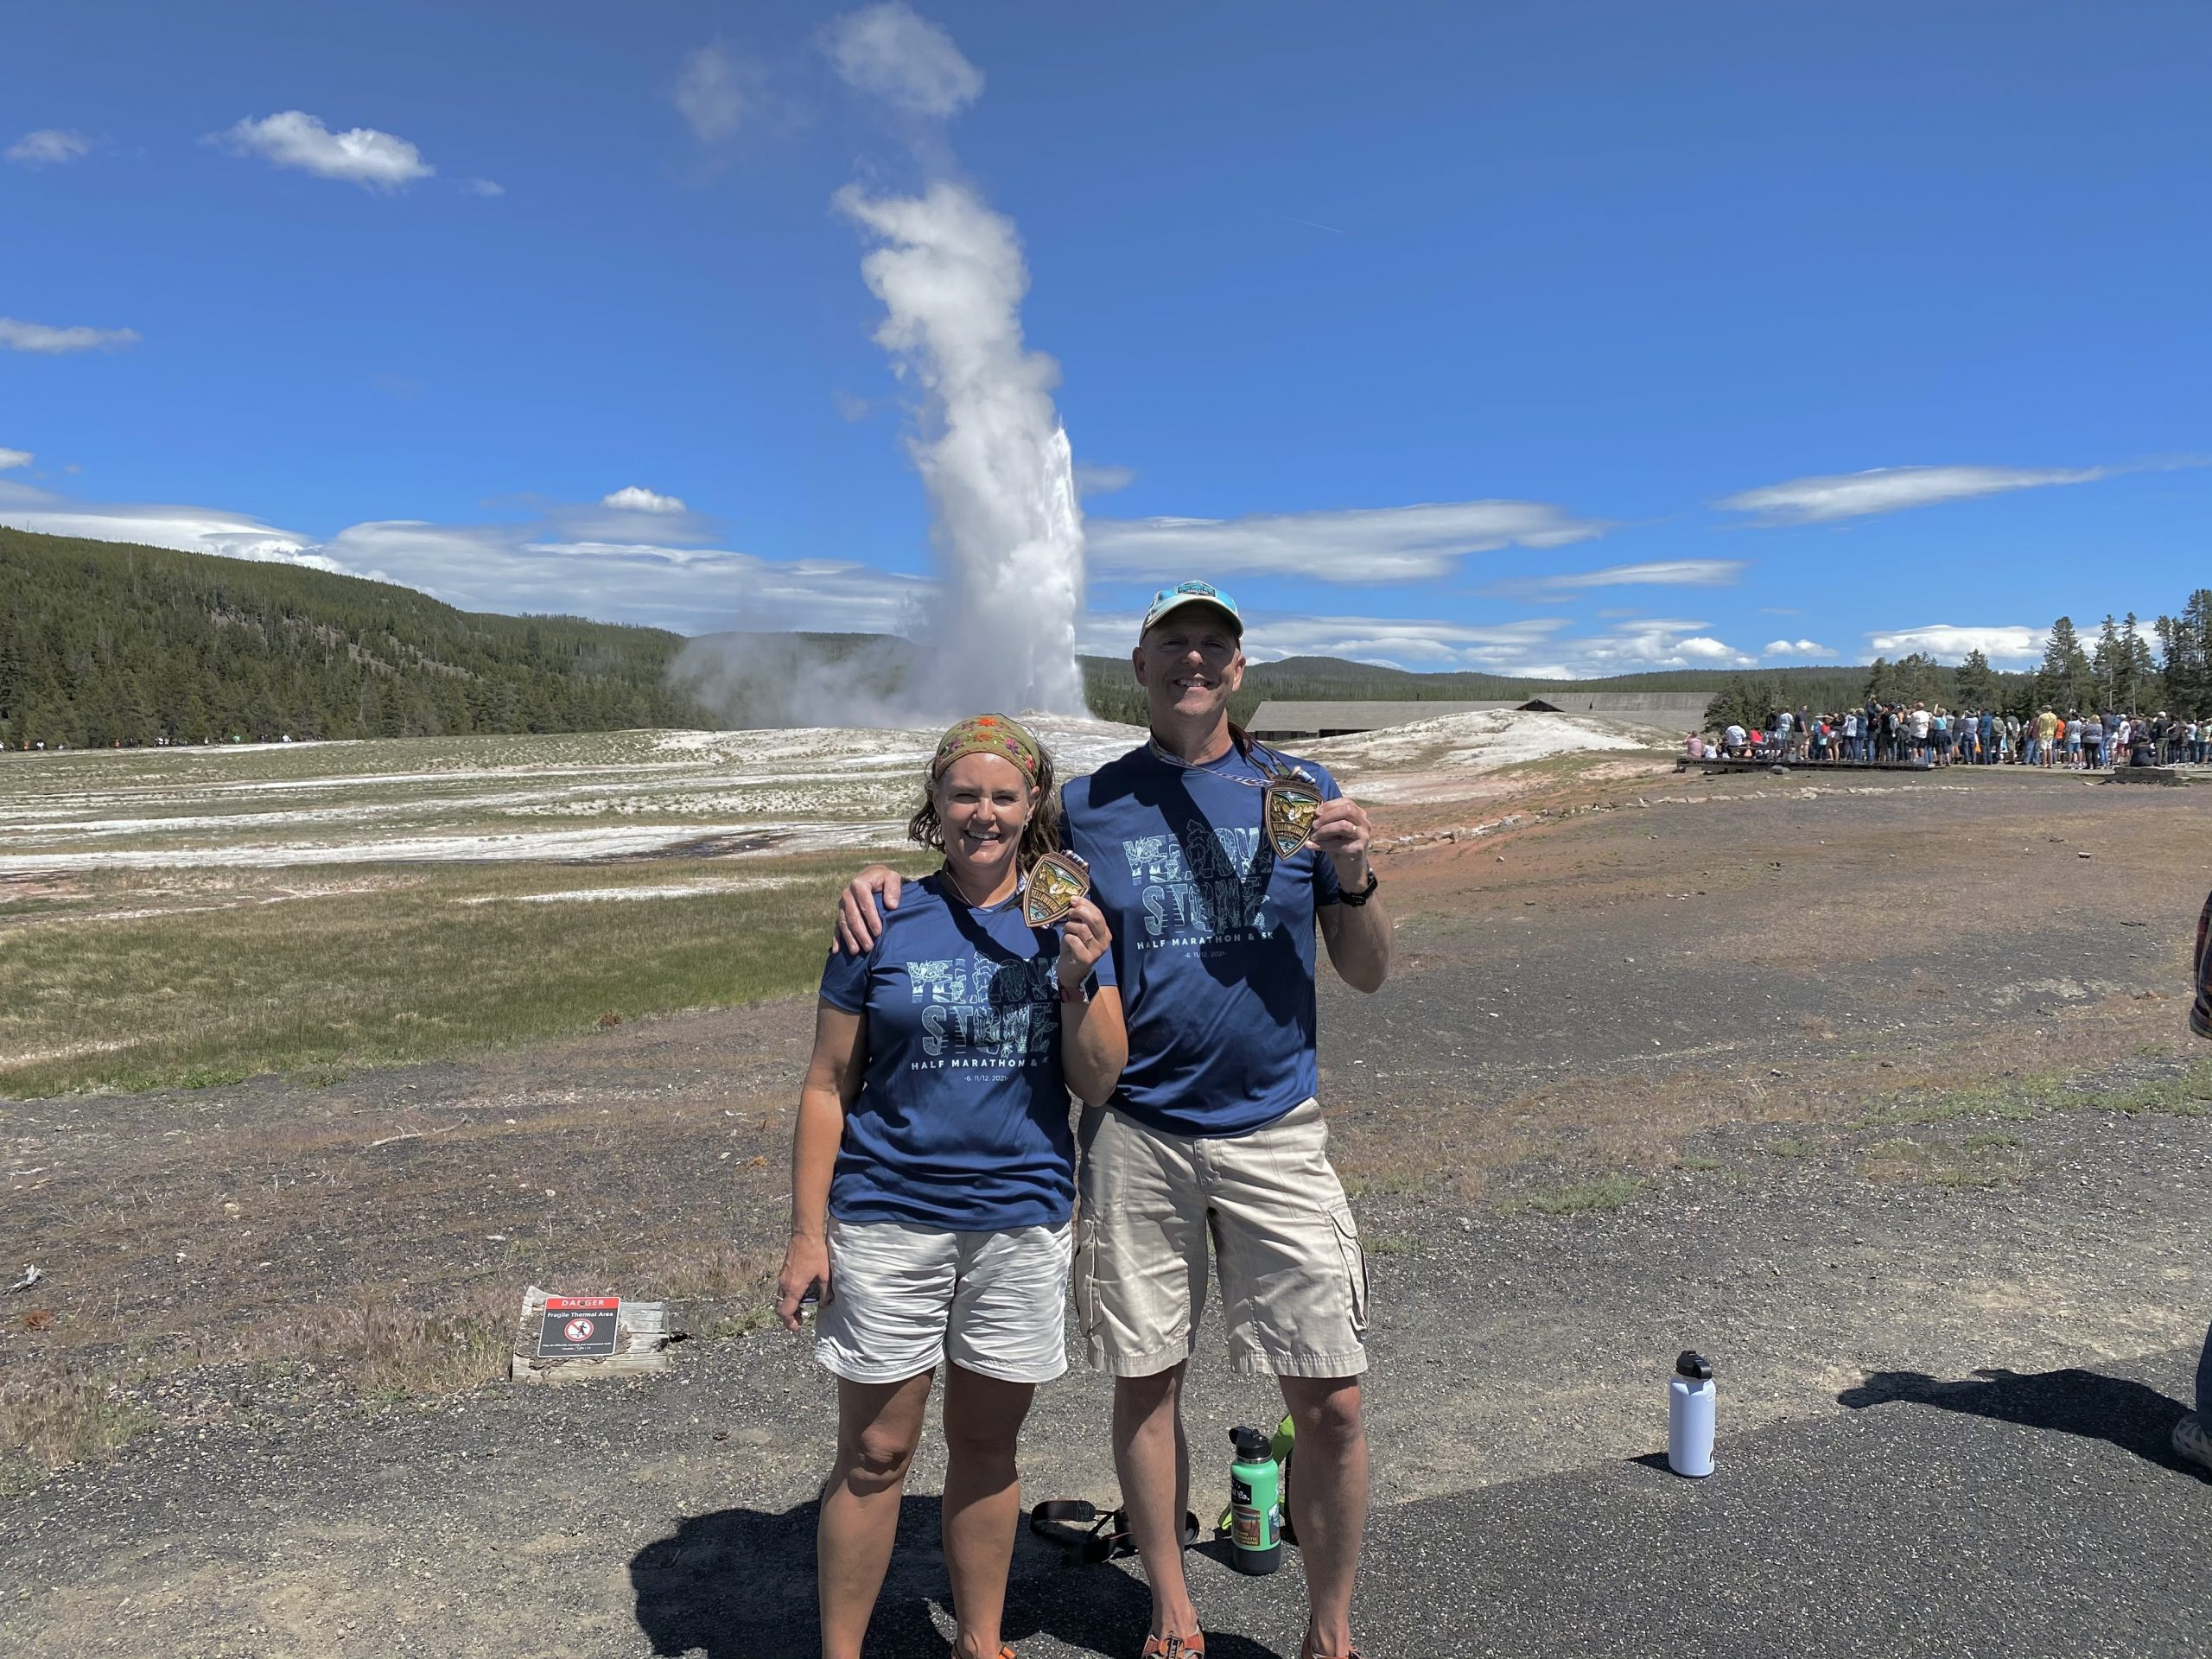 2021.06.12 A Race, Old Faithful, and Chico Hot Springs